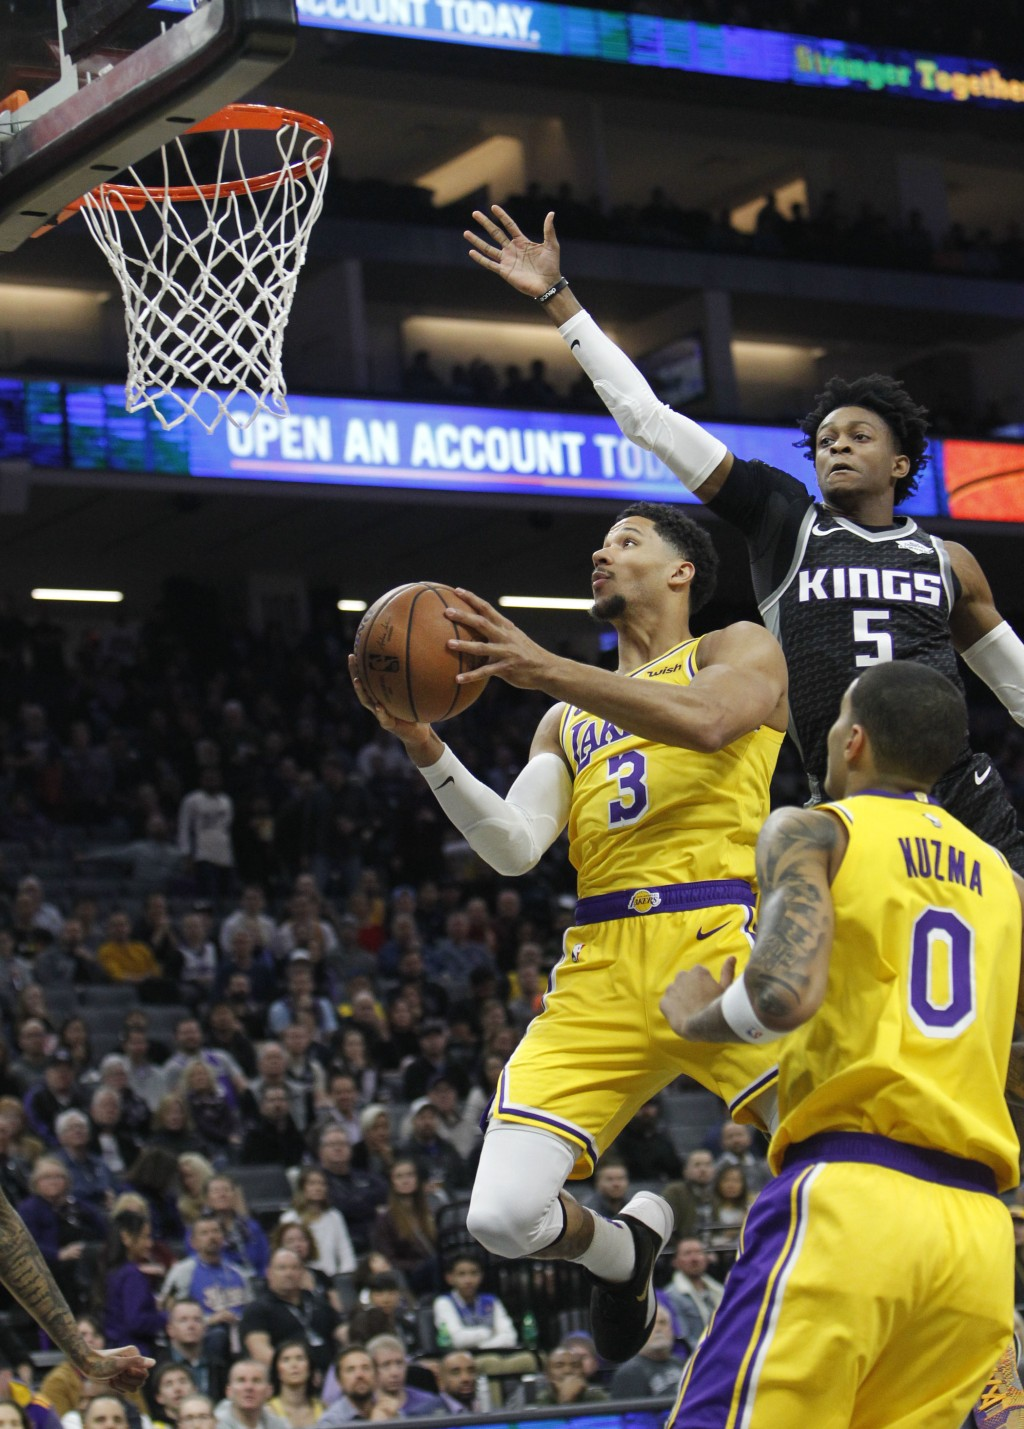 Los Angeles Lakers guard Josh Hart (3) drives to the basket as Sacramento Kings guard De'Aaron Fox (5) defends during the first half of an NBA basketb...